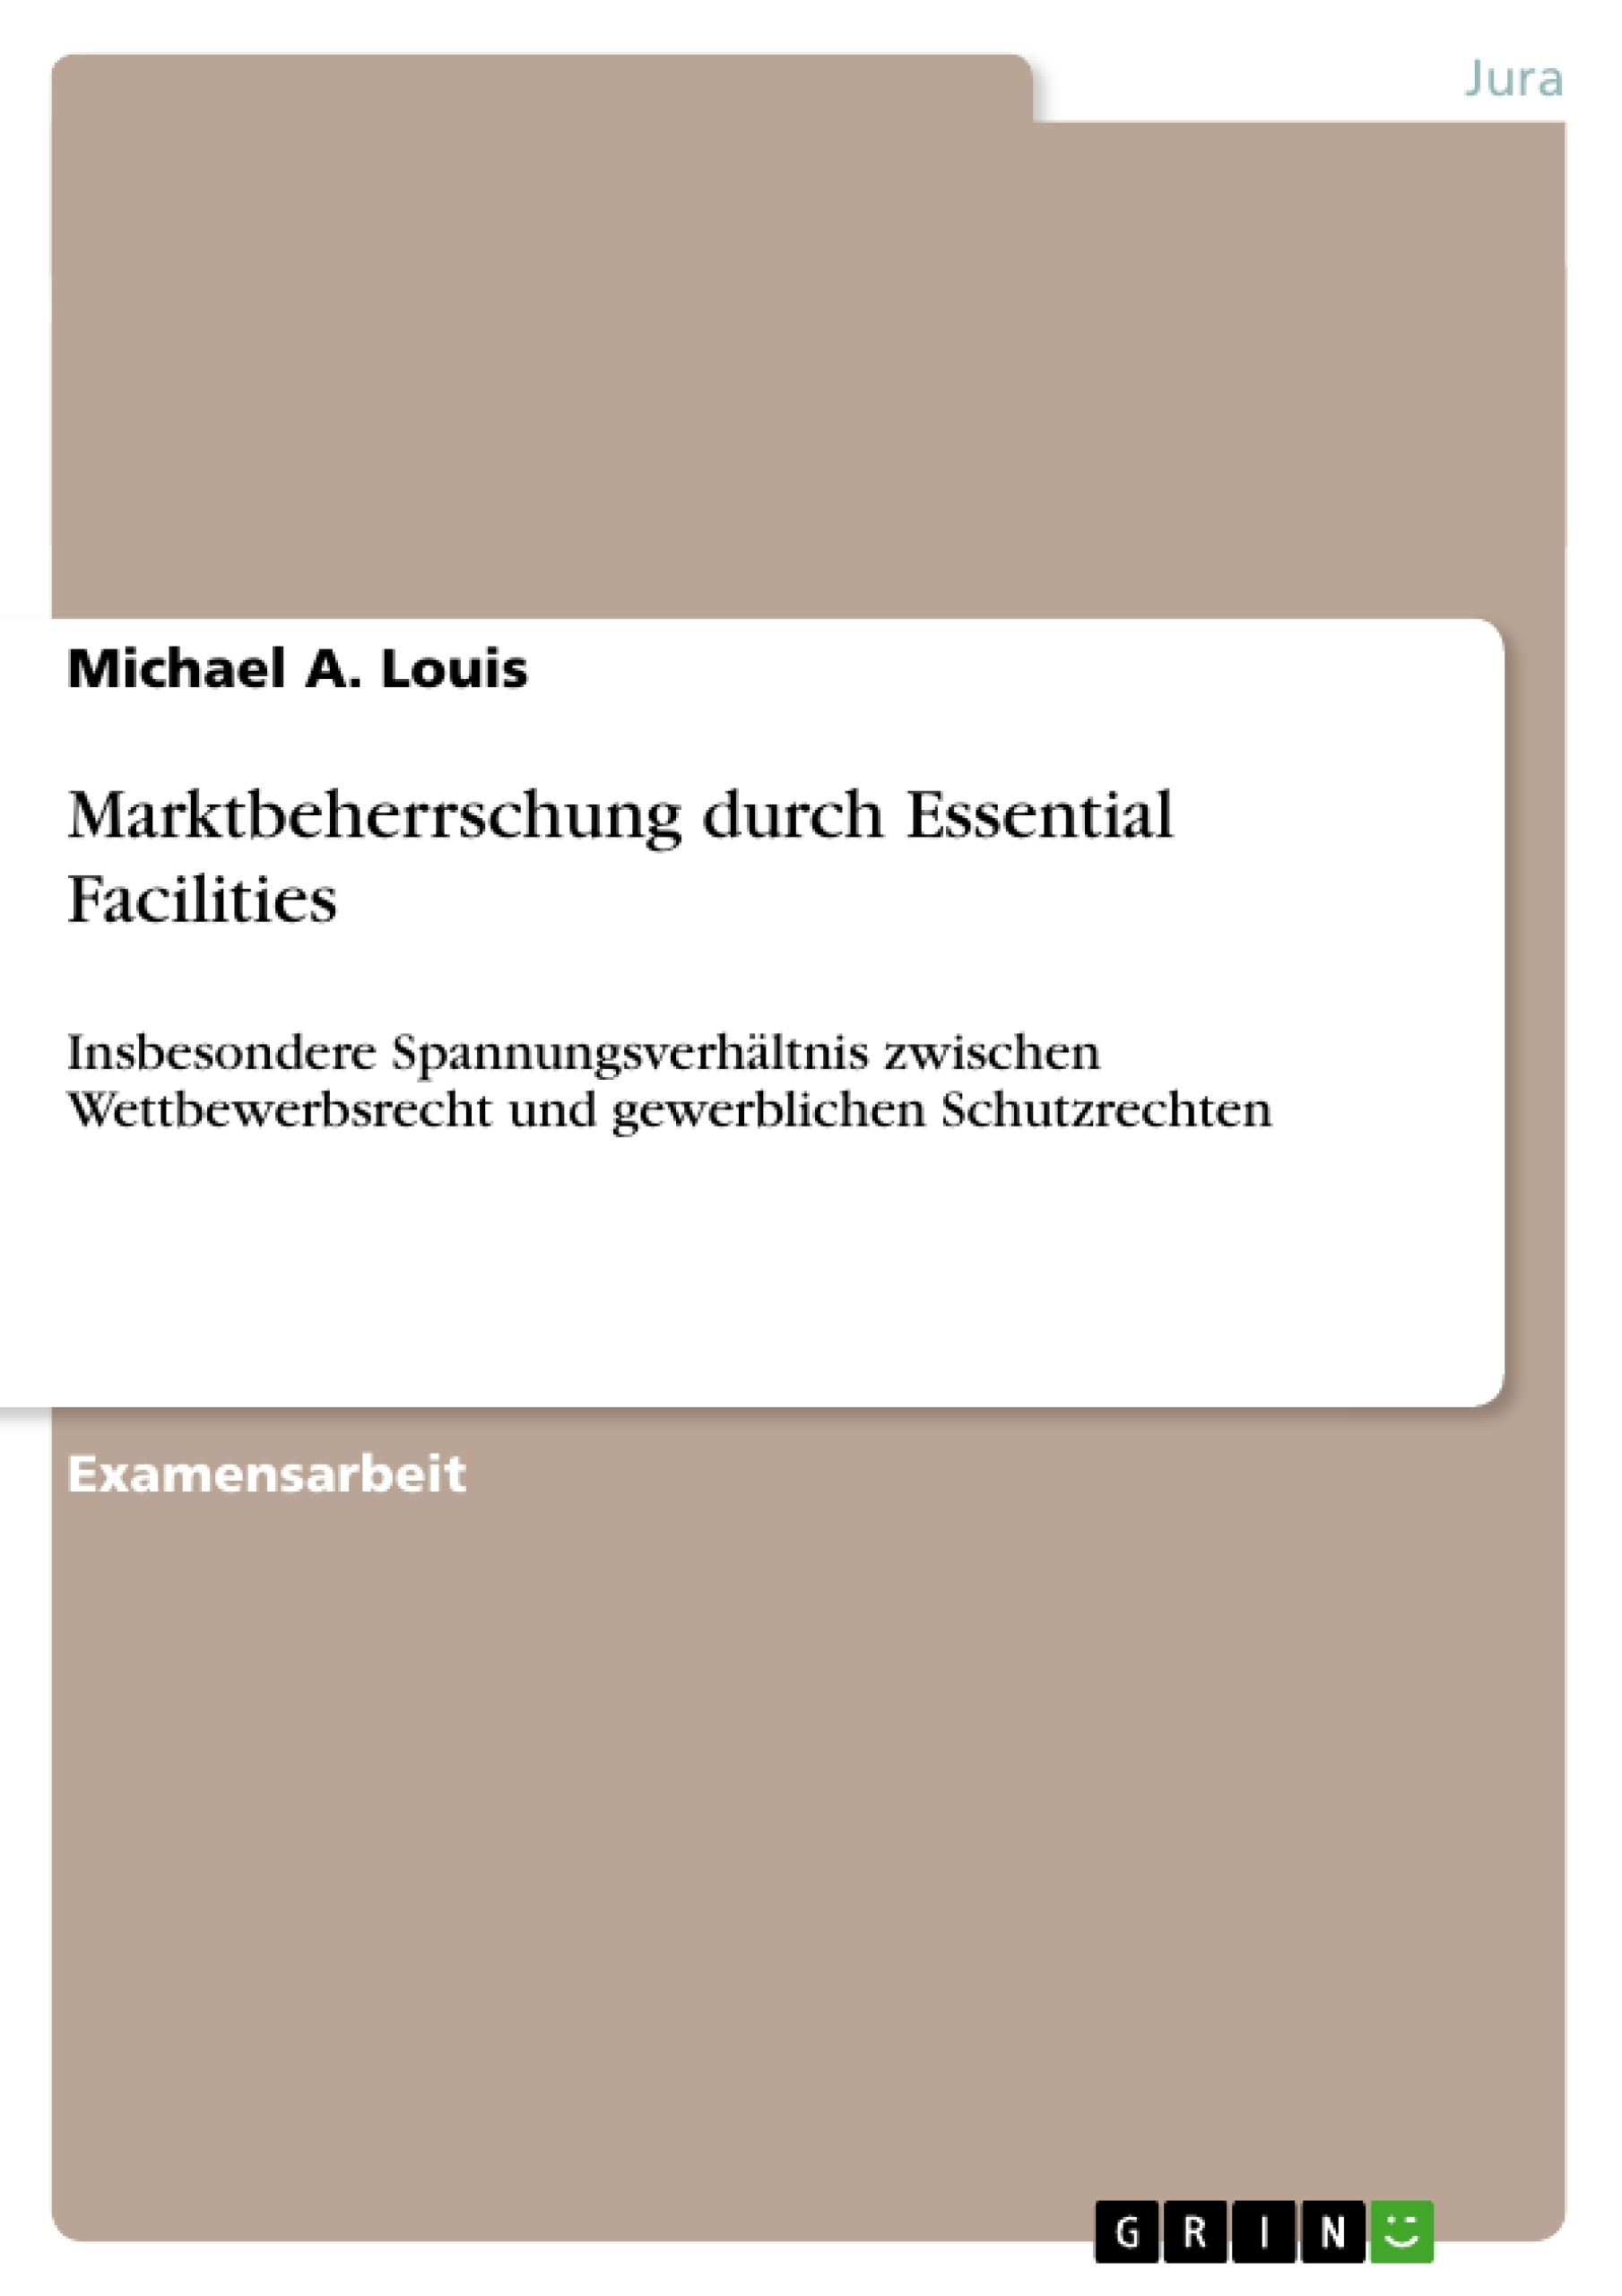 Titel: Marktbeherrschung durch Essential Facilities